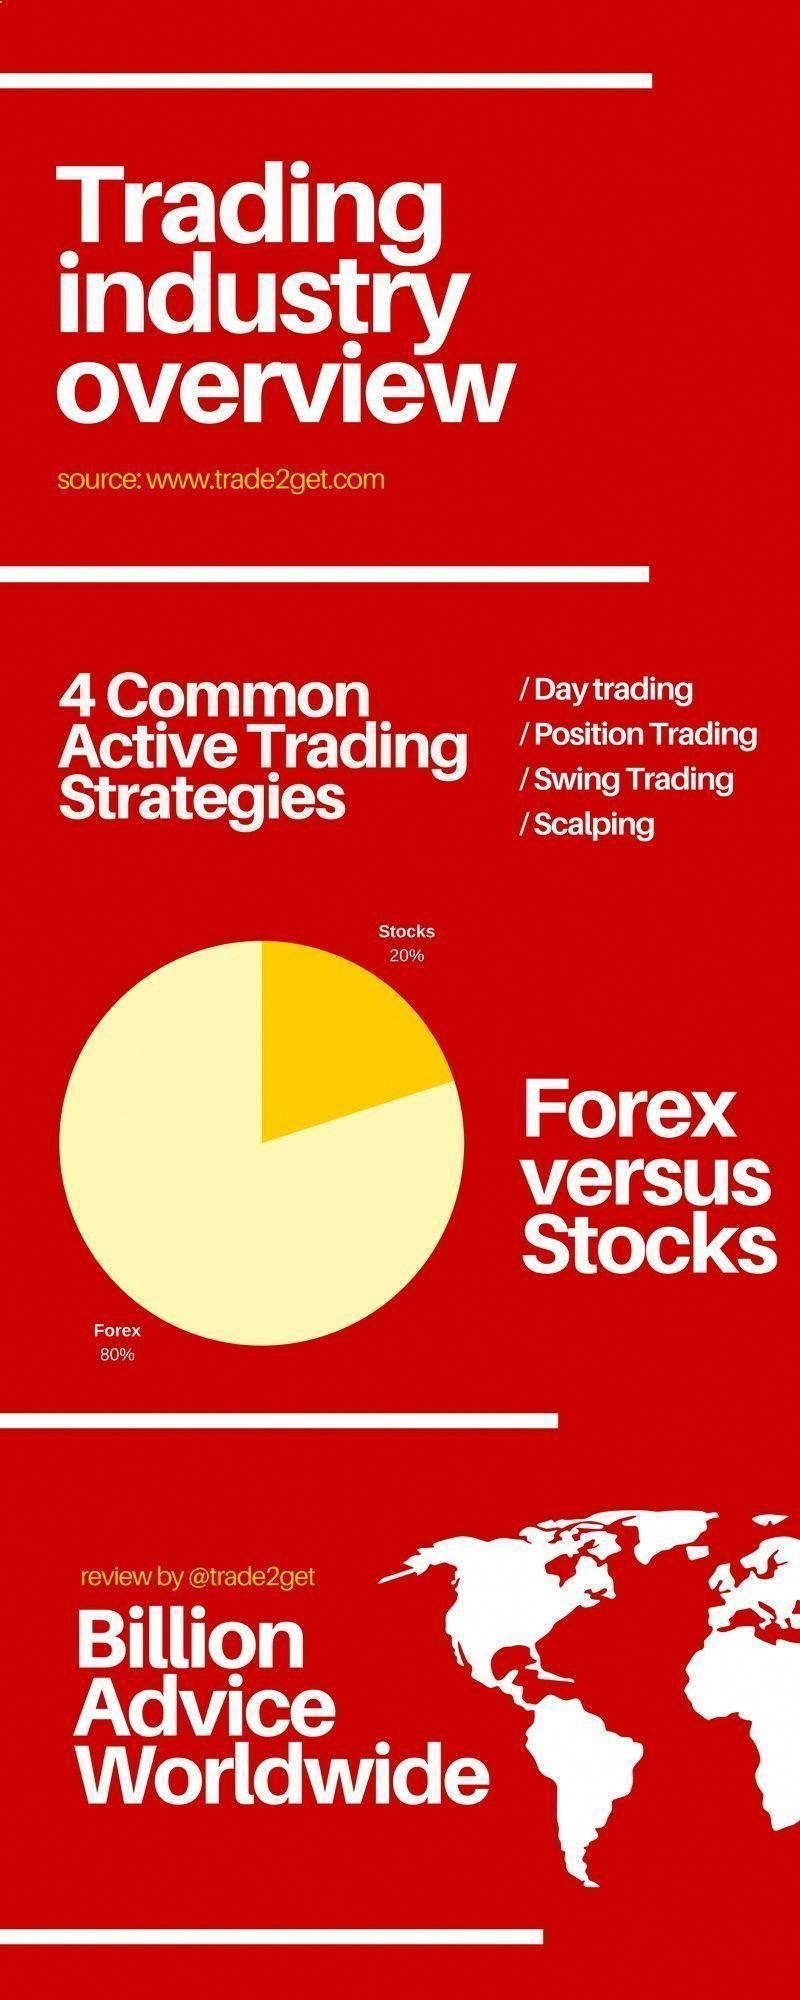 Trading Forex Strategies Tips For Beginners Candleinfographic Forextrading Forextradingtips202 Forextradingandcoaching Forexadvice